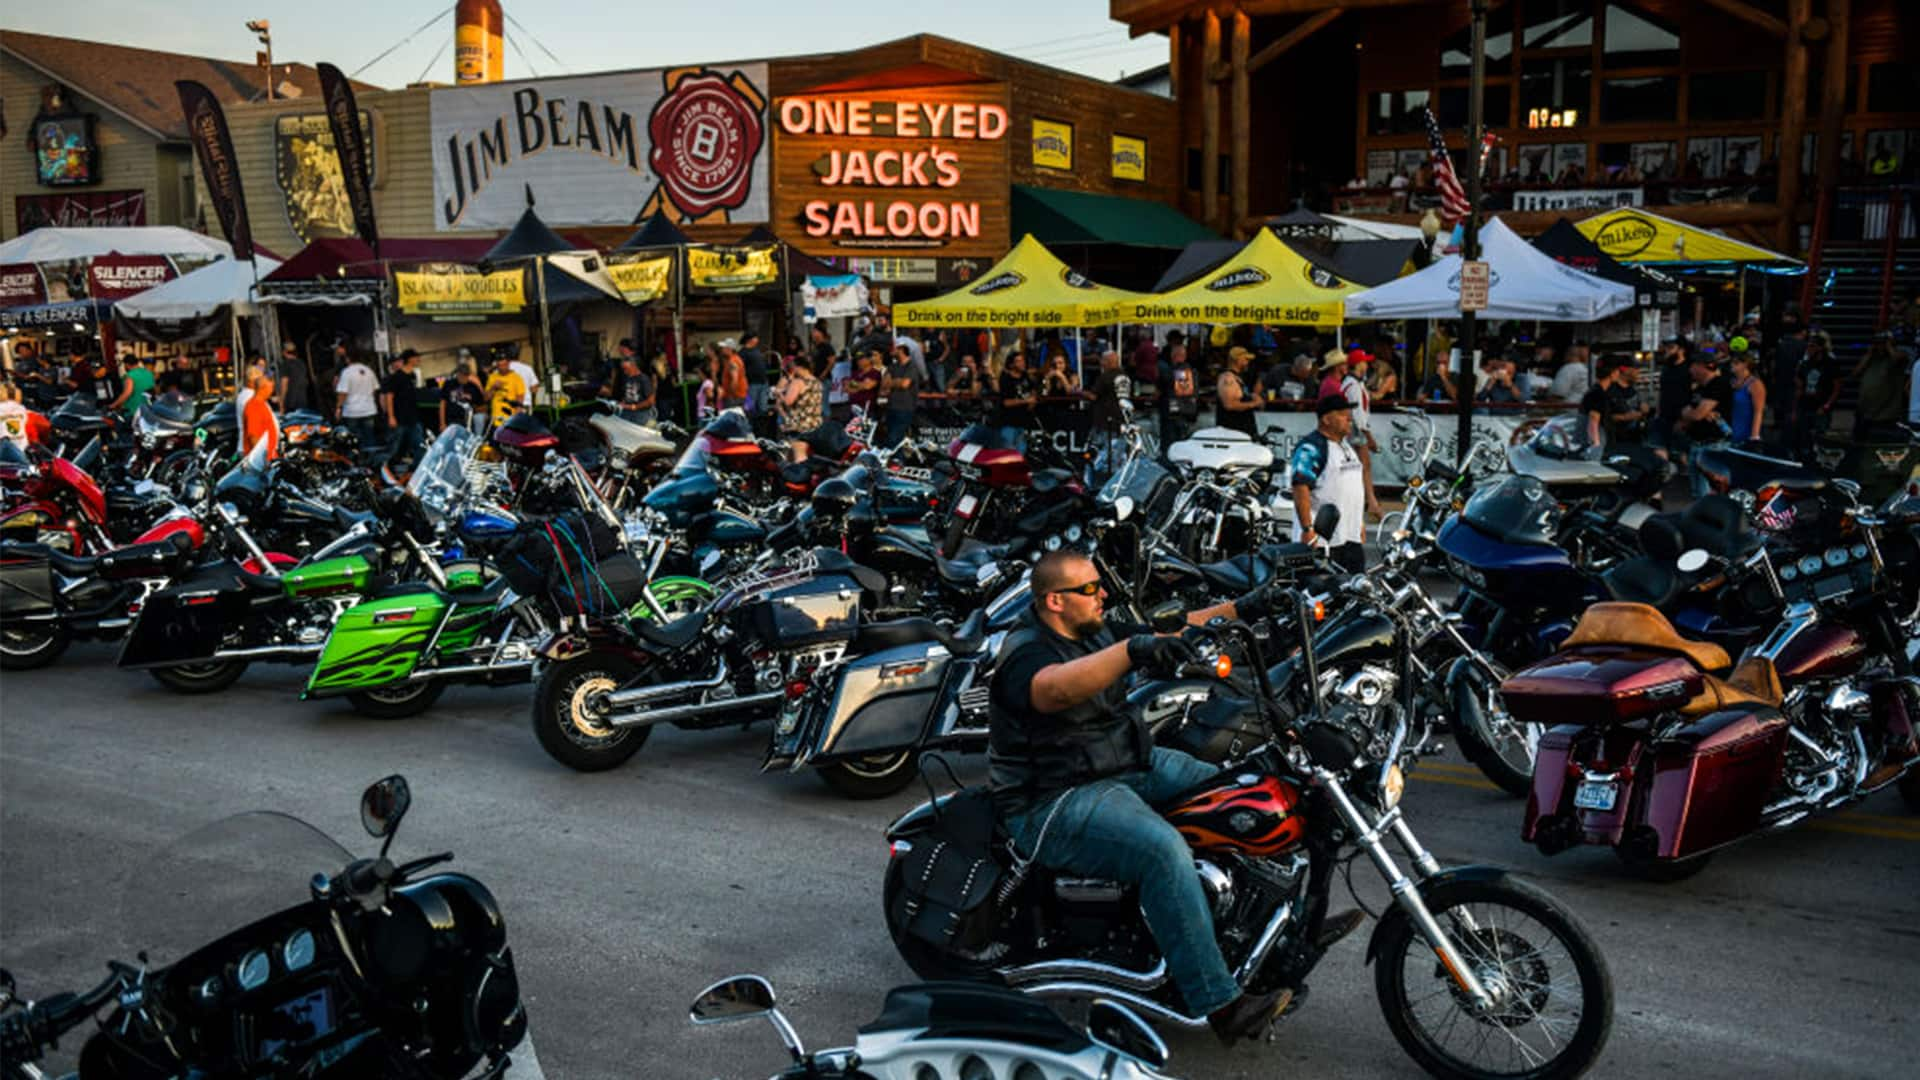 Bikers Descend On South Dakota For Massive Rally With Scant Covid 19 Precautions Cbc News